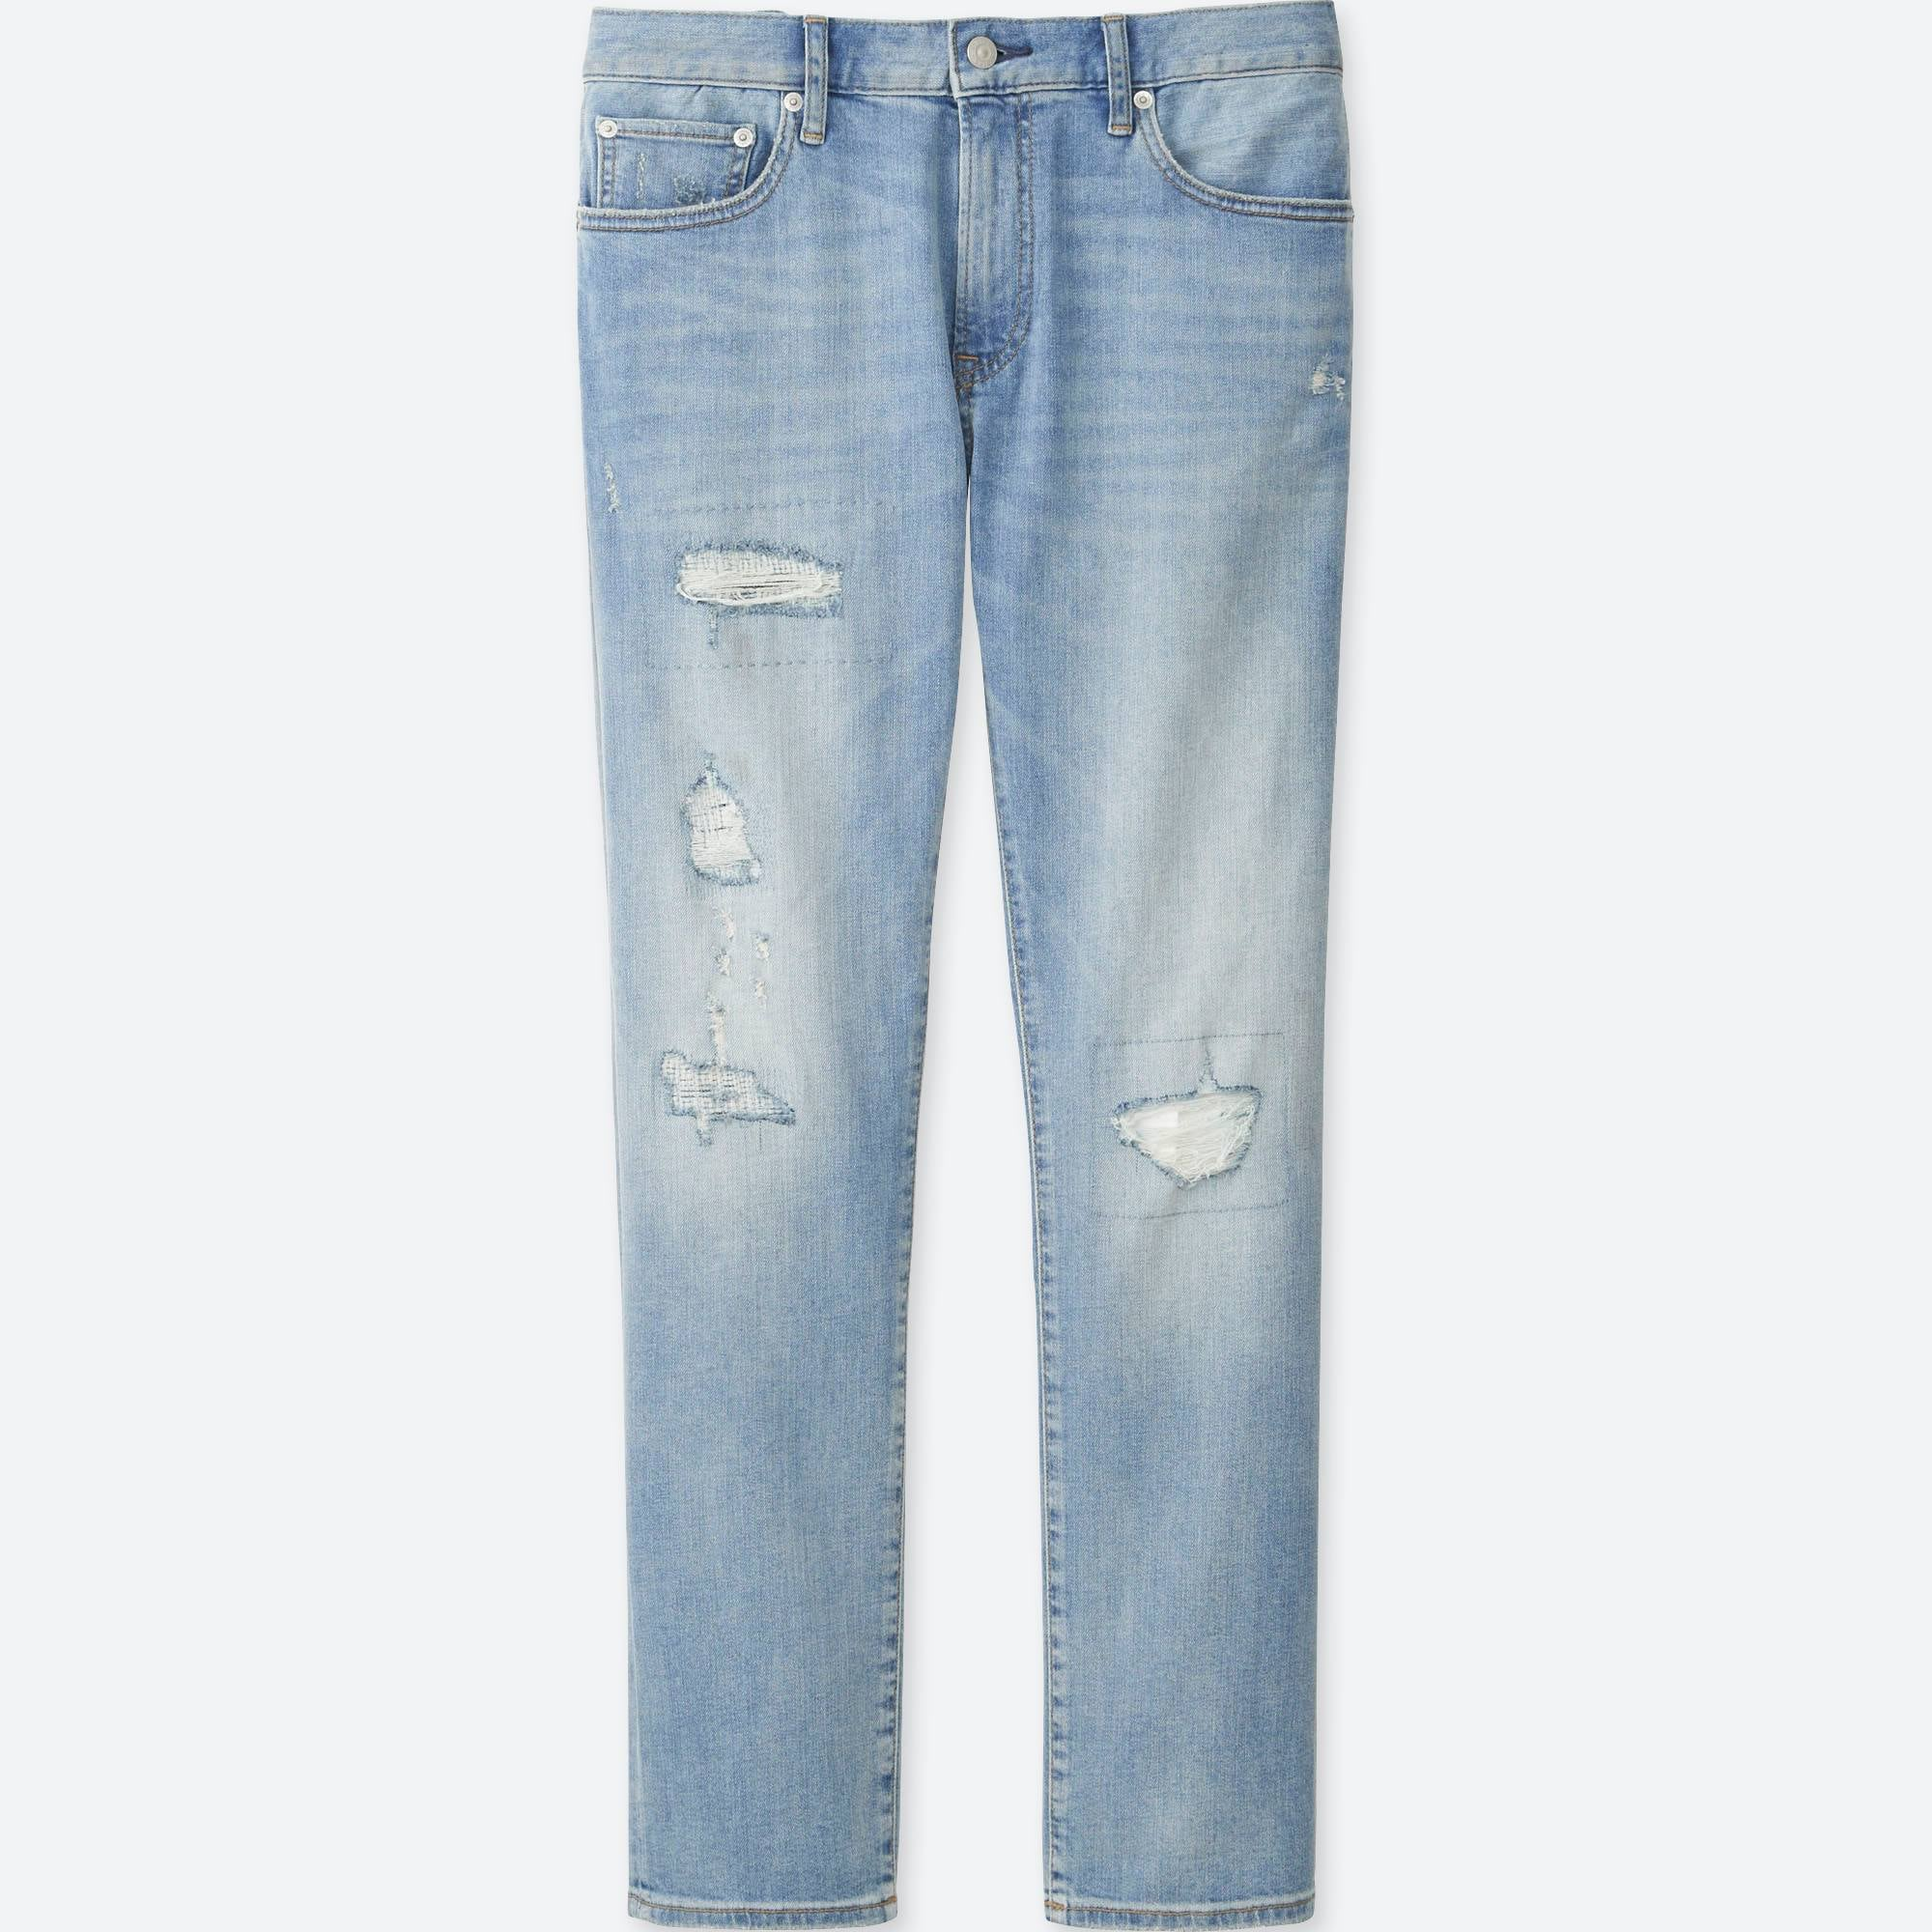 Uniqlo Slim Fit Distressed Jeans Regularly $49.90 Now. $9.90